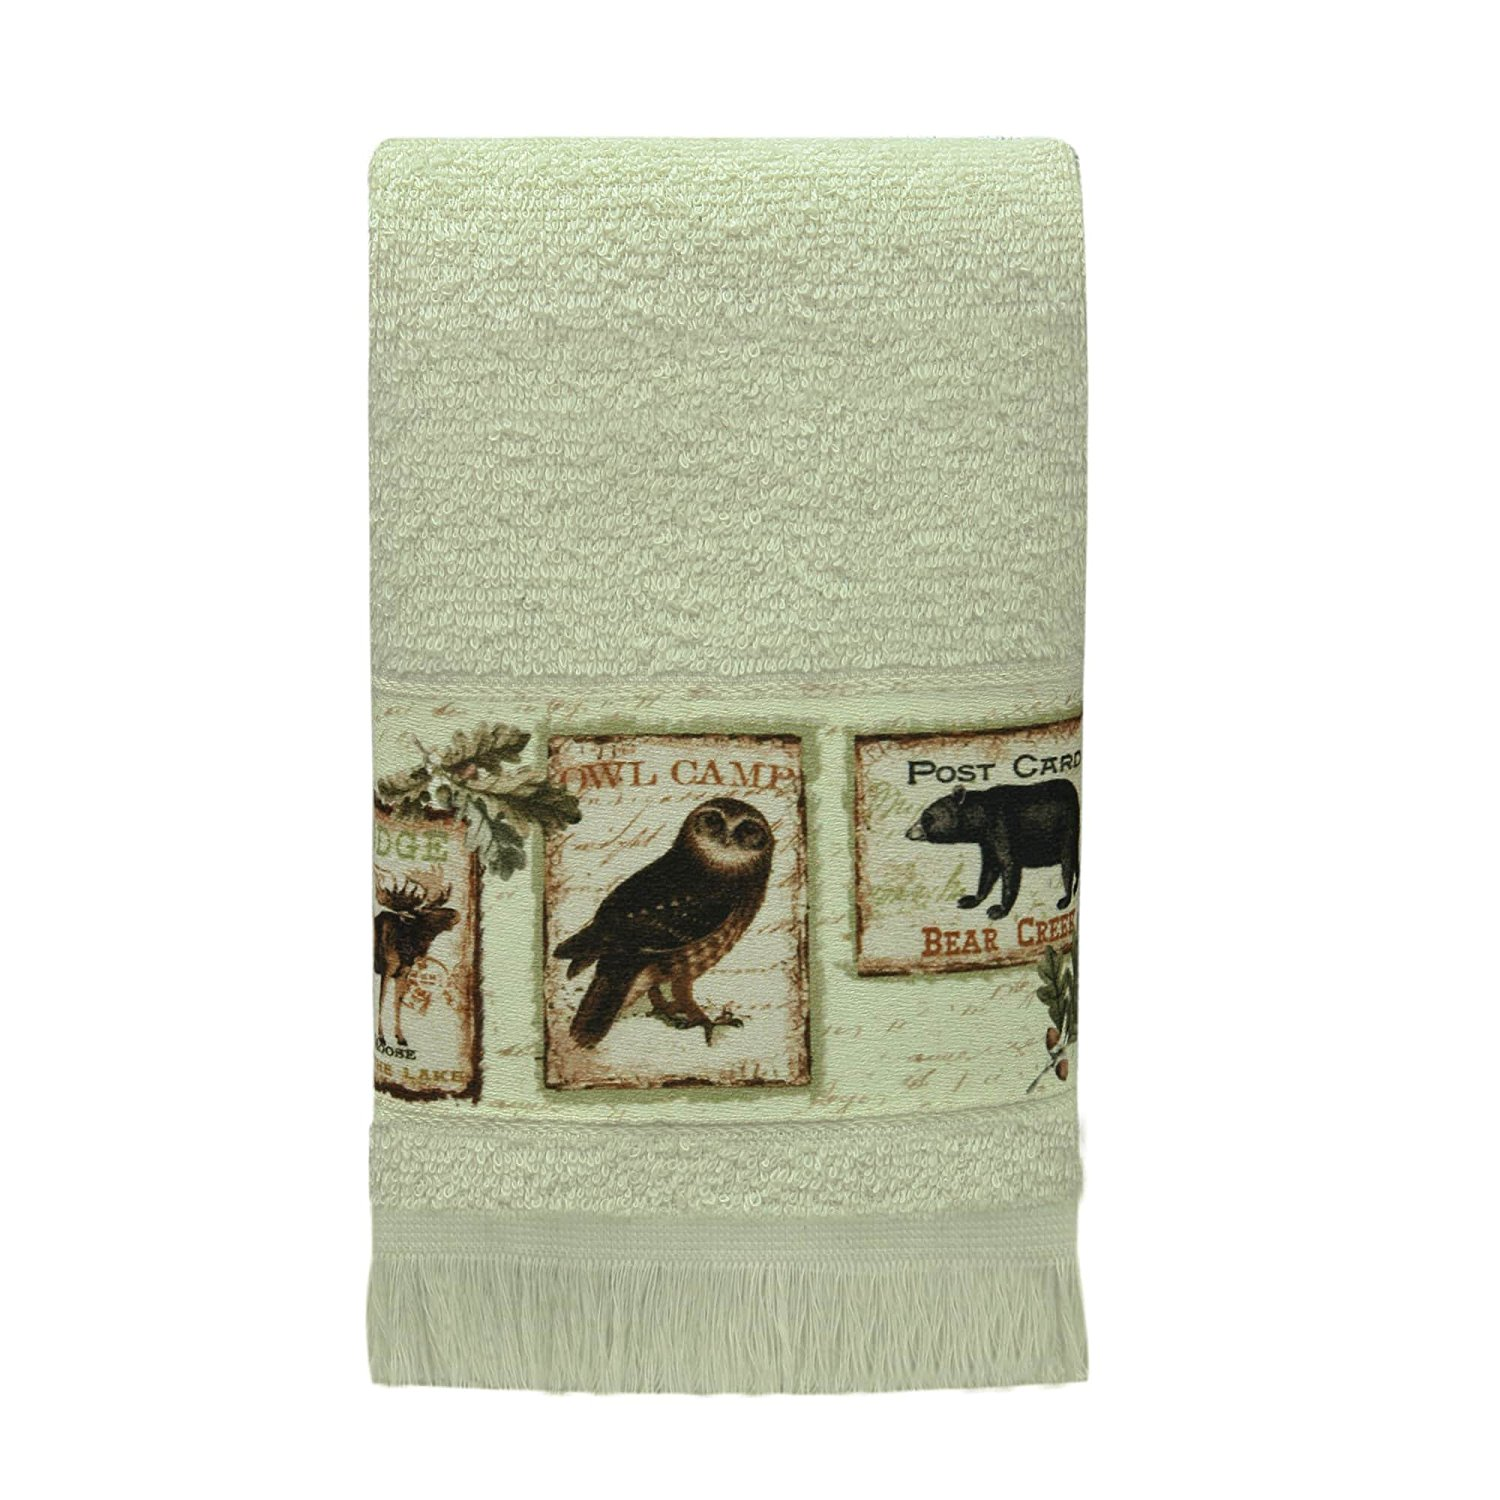 1 Piece Beige Lodge Memories 11 X 18 Inches Fingertip Towel, Ivory Animal Print Nature Novelty Pattern Decorative Heat Transfer Printed Band Soft Cozy Luxurious Comfortable Long-lasting Towel, Cotton